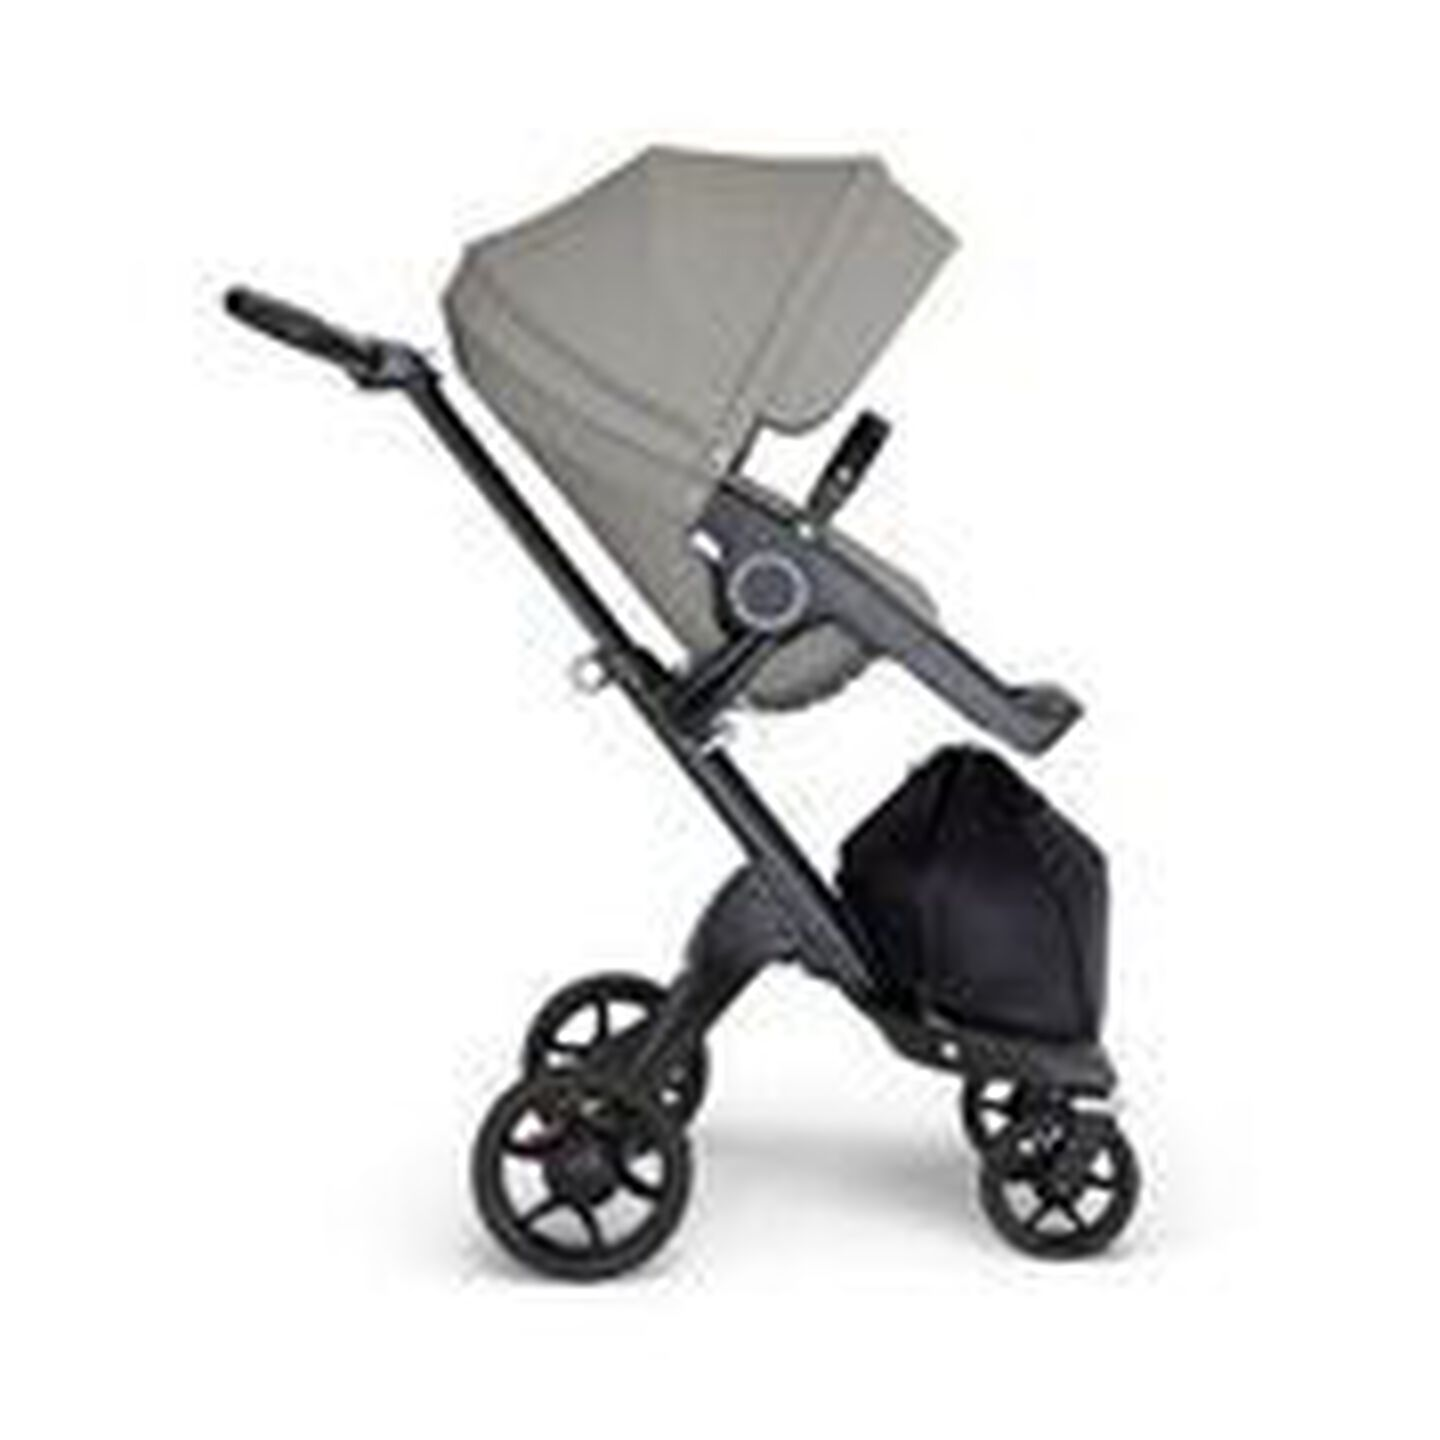 Stokke® Xplory® 6 Black Chassis - Black Handle Brushed Grey, Brushed Grey, mainview